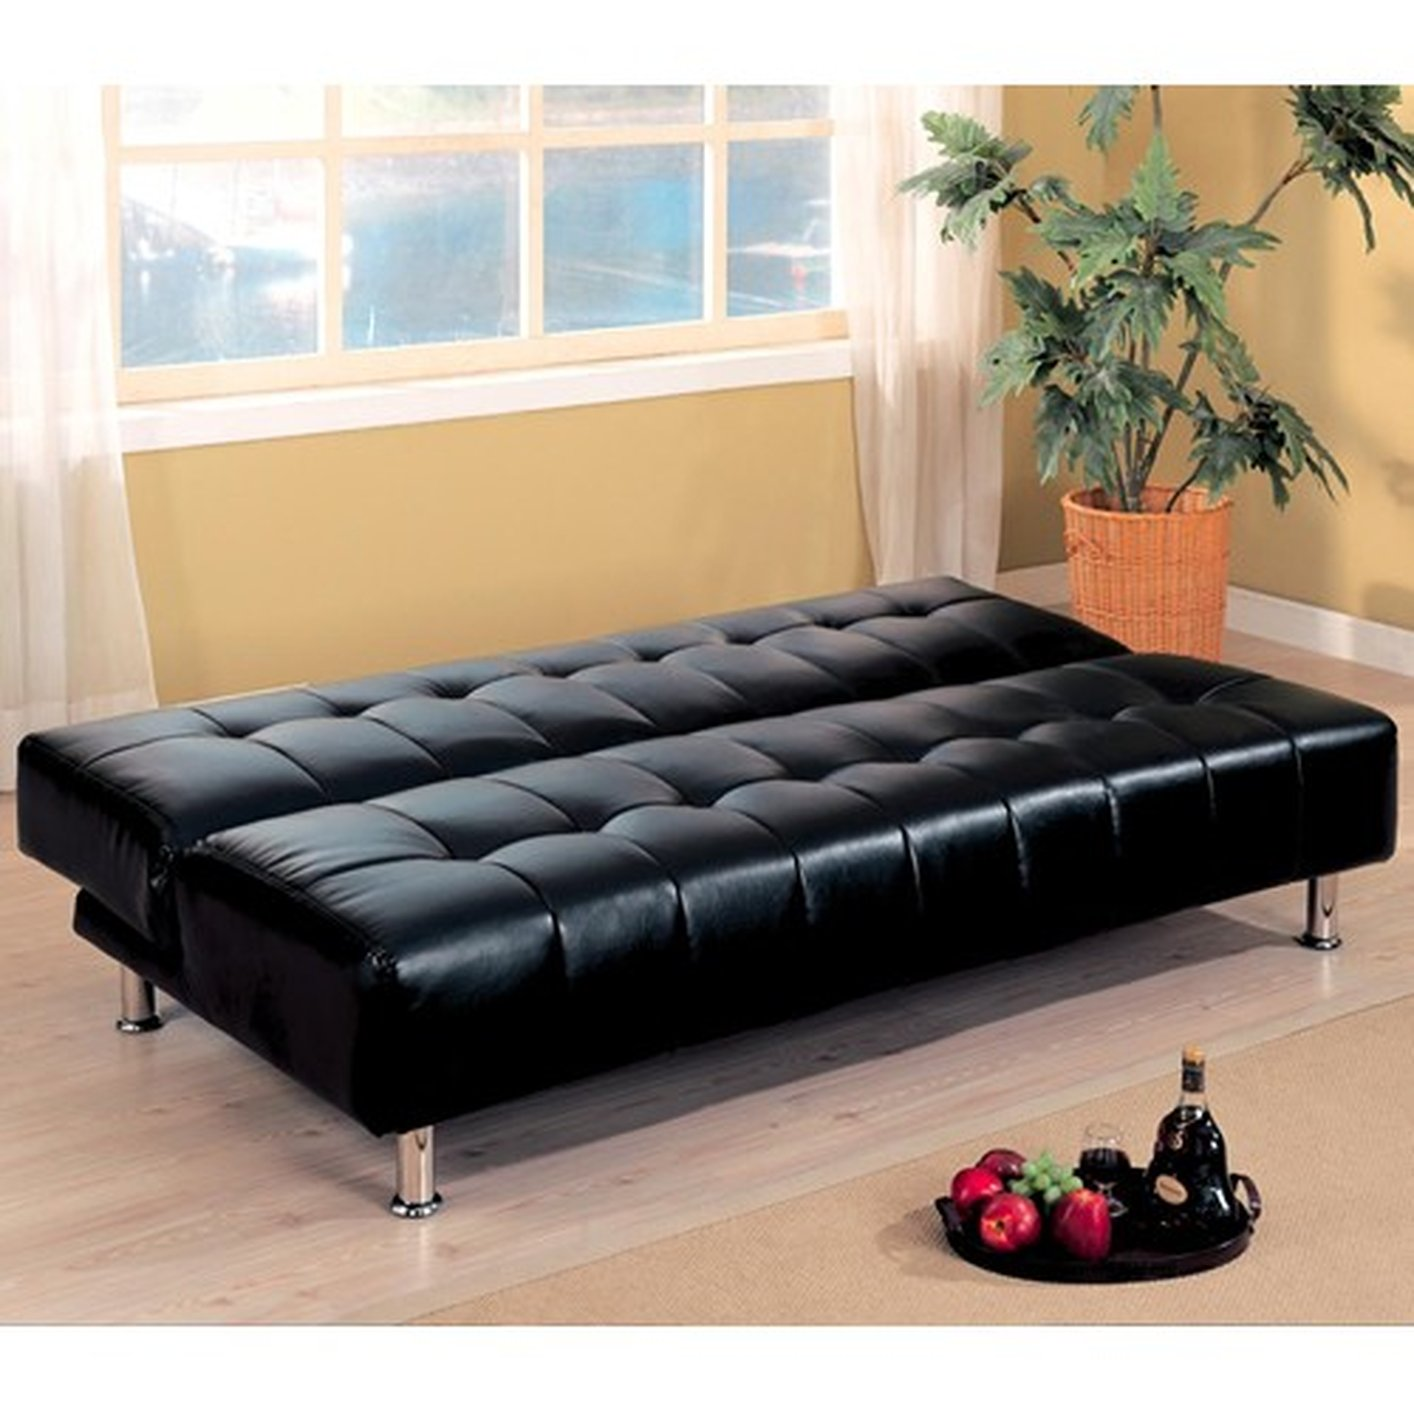 Black Leather Sofa Bed Black Leather Sofa Bed ...